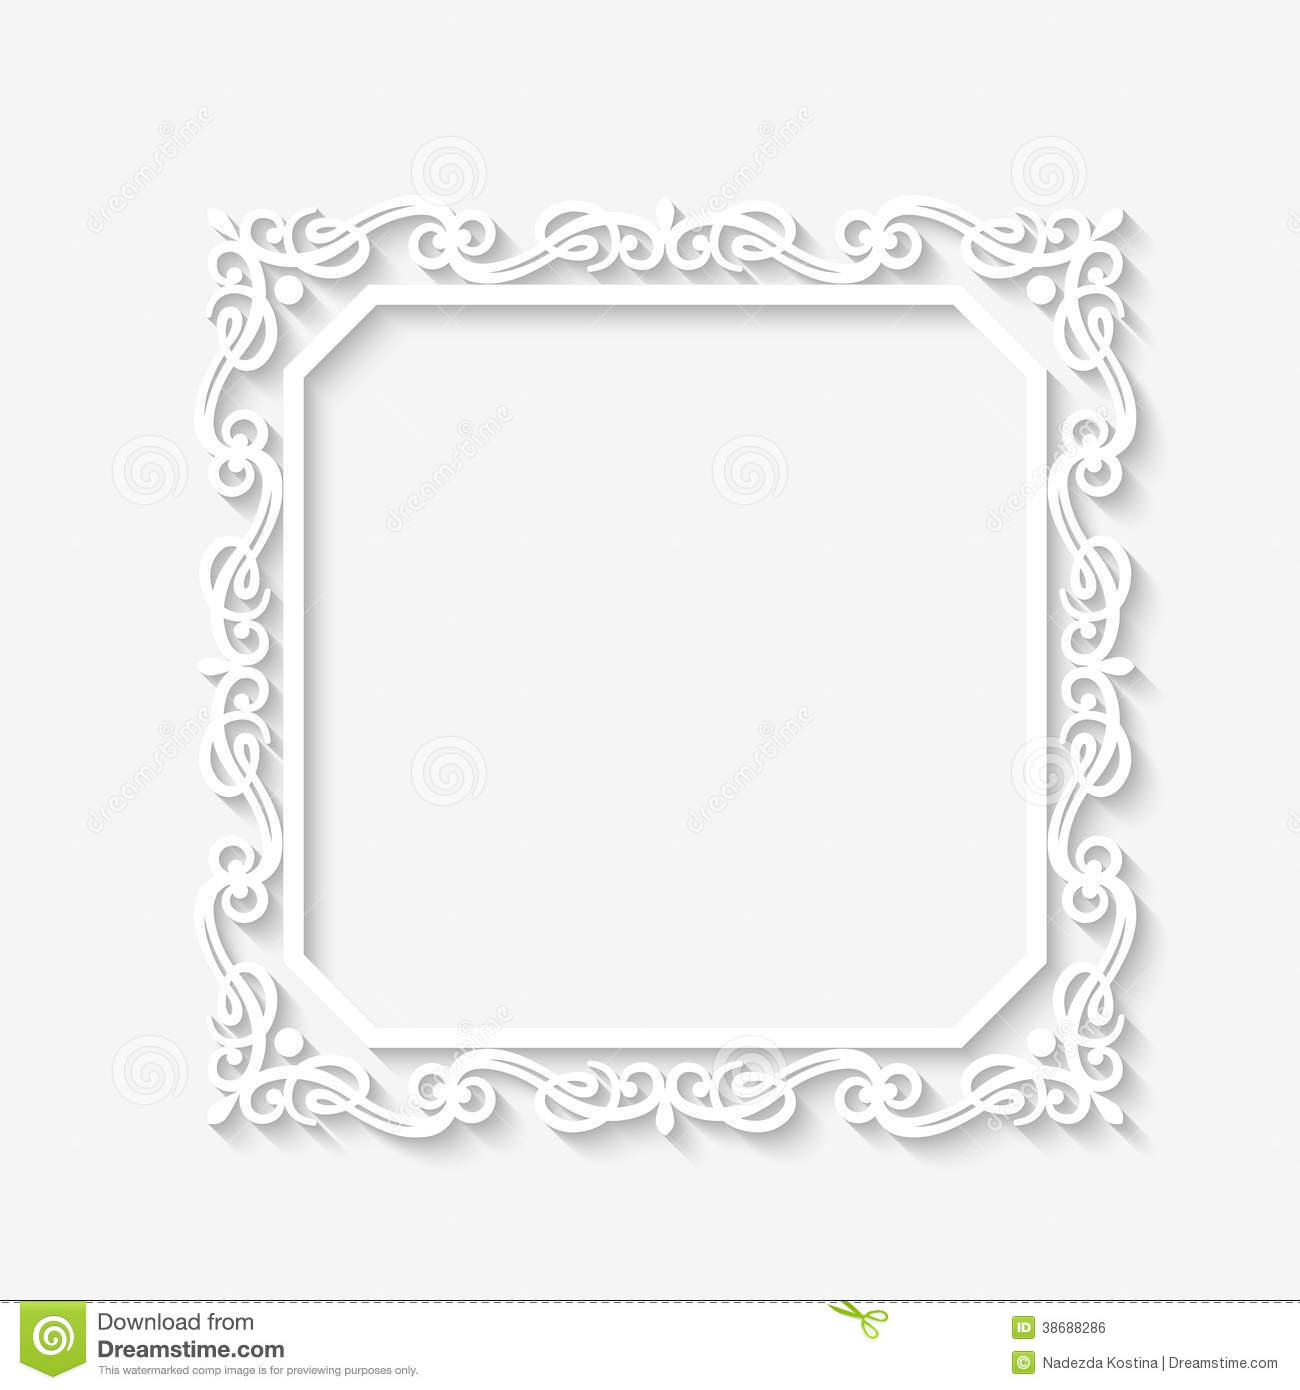 Vector Vintage Baroque White Frame Stock Vector - Illustration of ...